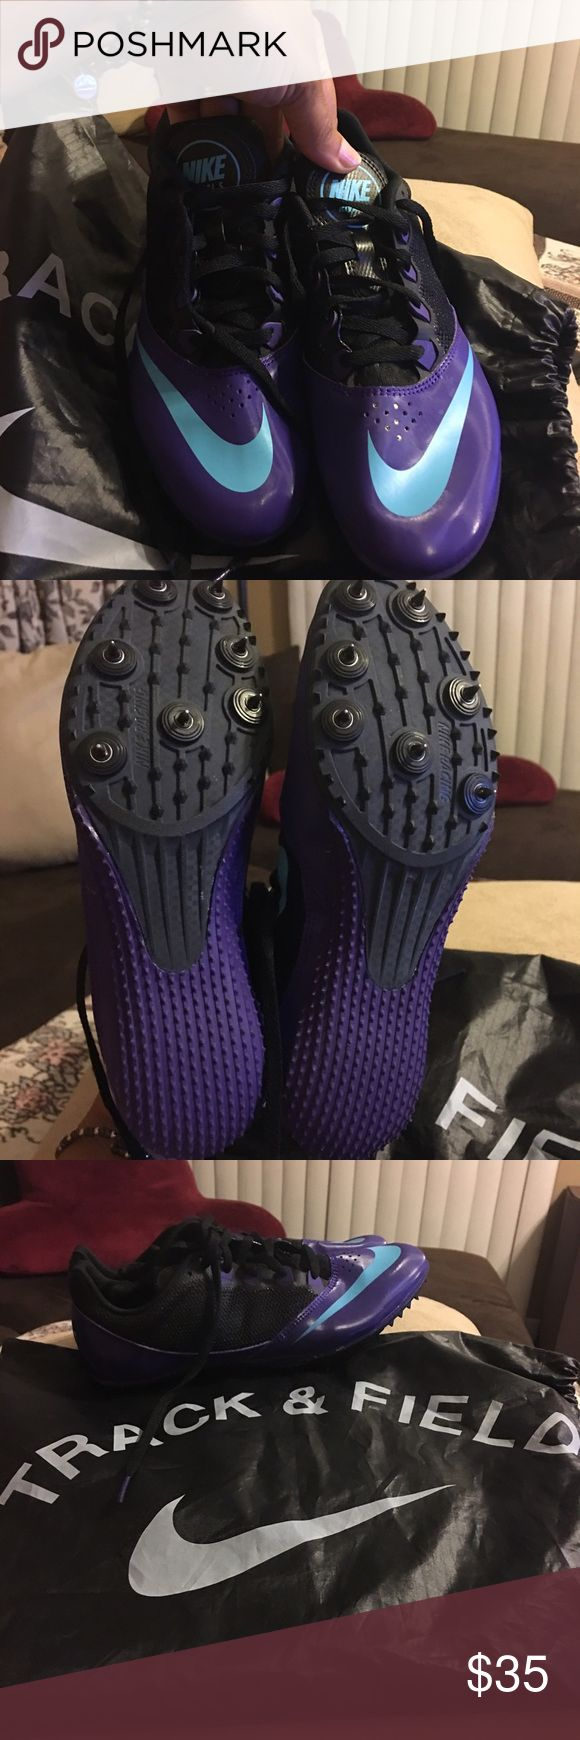 Nike Track & Field Shoes size 8.5- Like new Nike Track & Field Shoes size 8.5- Like new! Worn just once! Nike Shoes Athletic Shoes